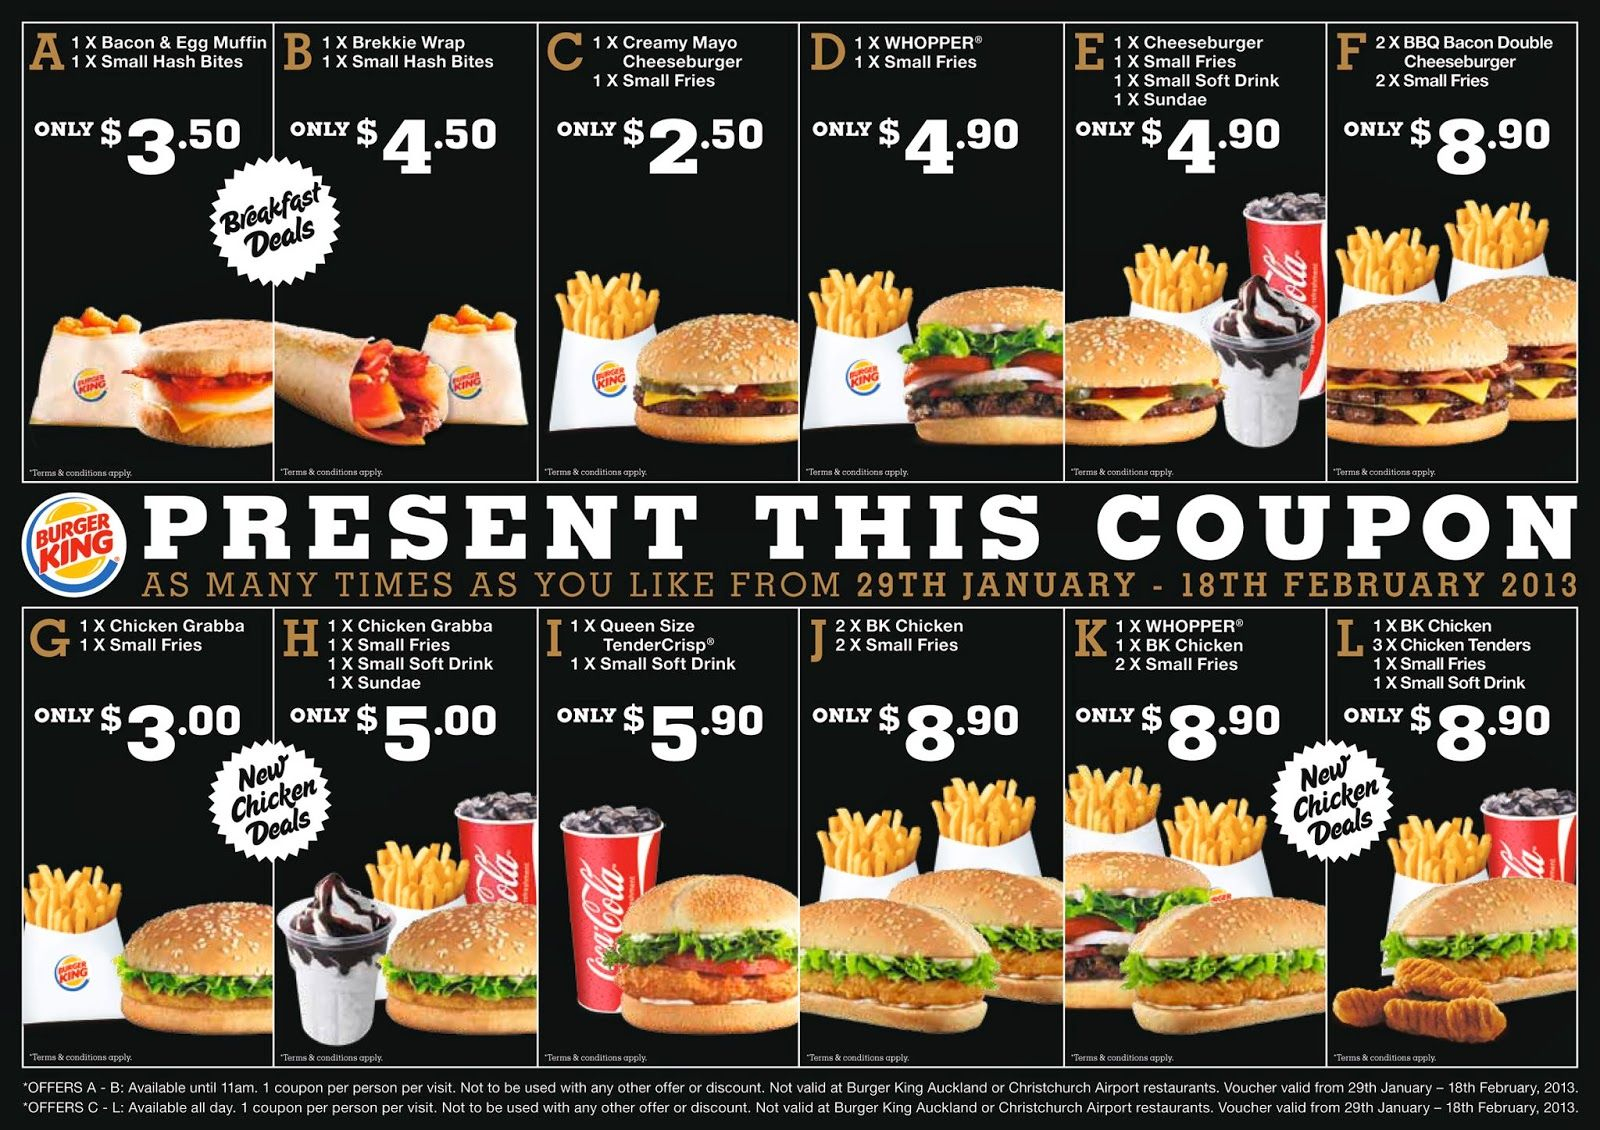 Printable Coupons: Burger King Coupons… | Burger King | Pinterest - Burger King Free Coupons Printable